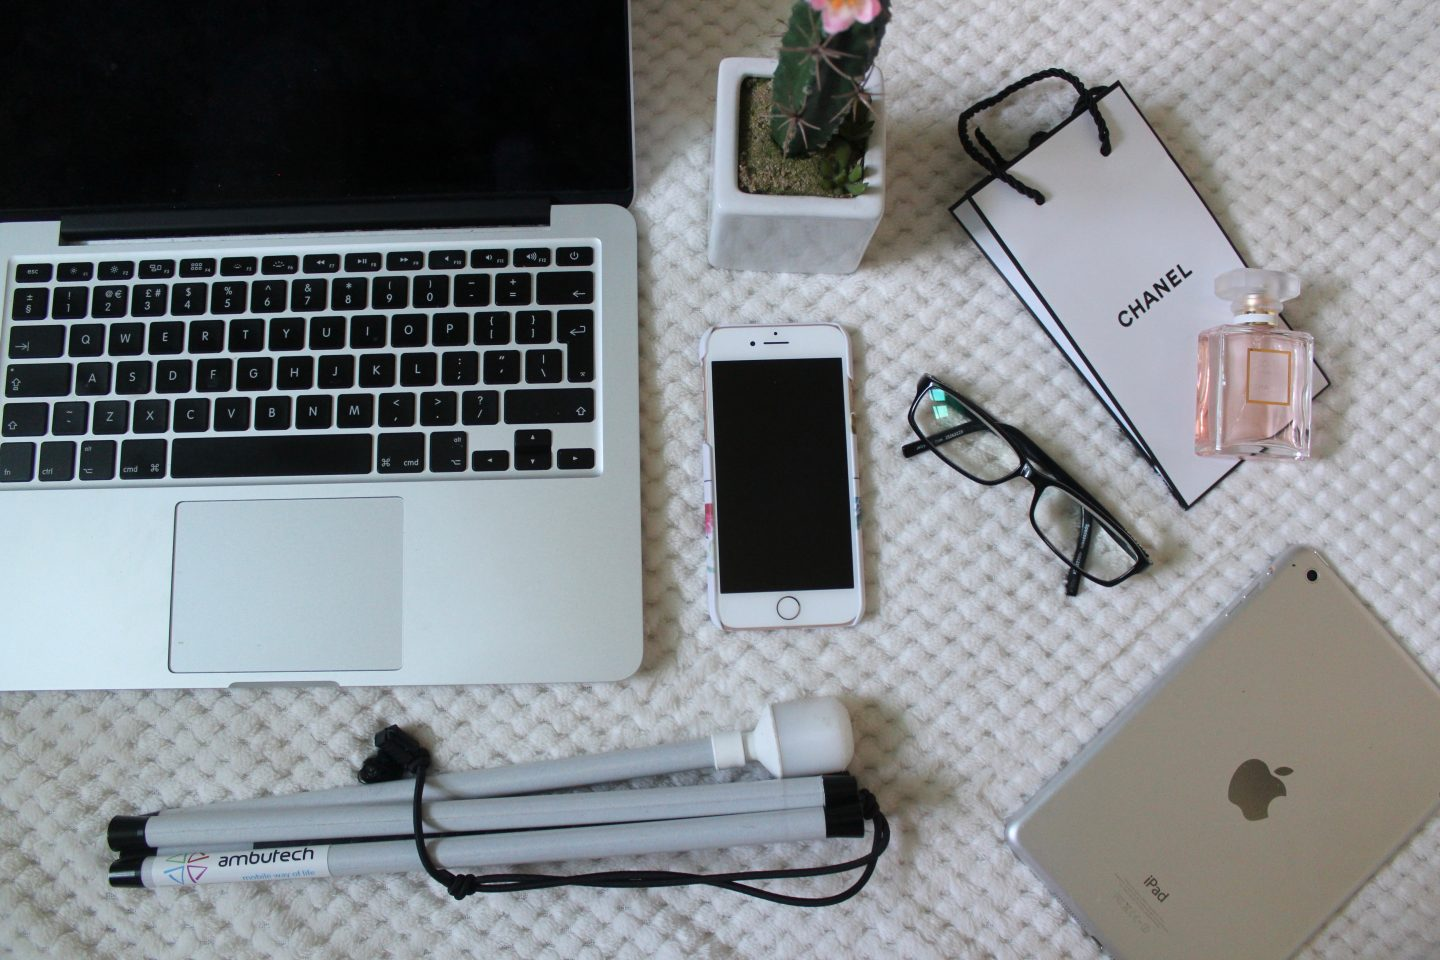 A photo of a macbook, white cane, iphone and ipad